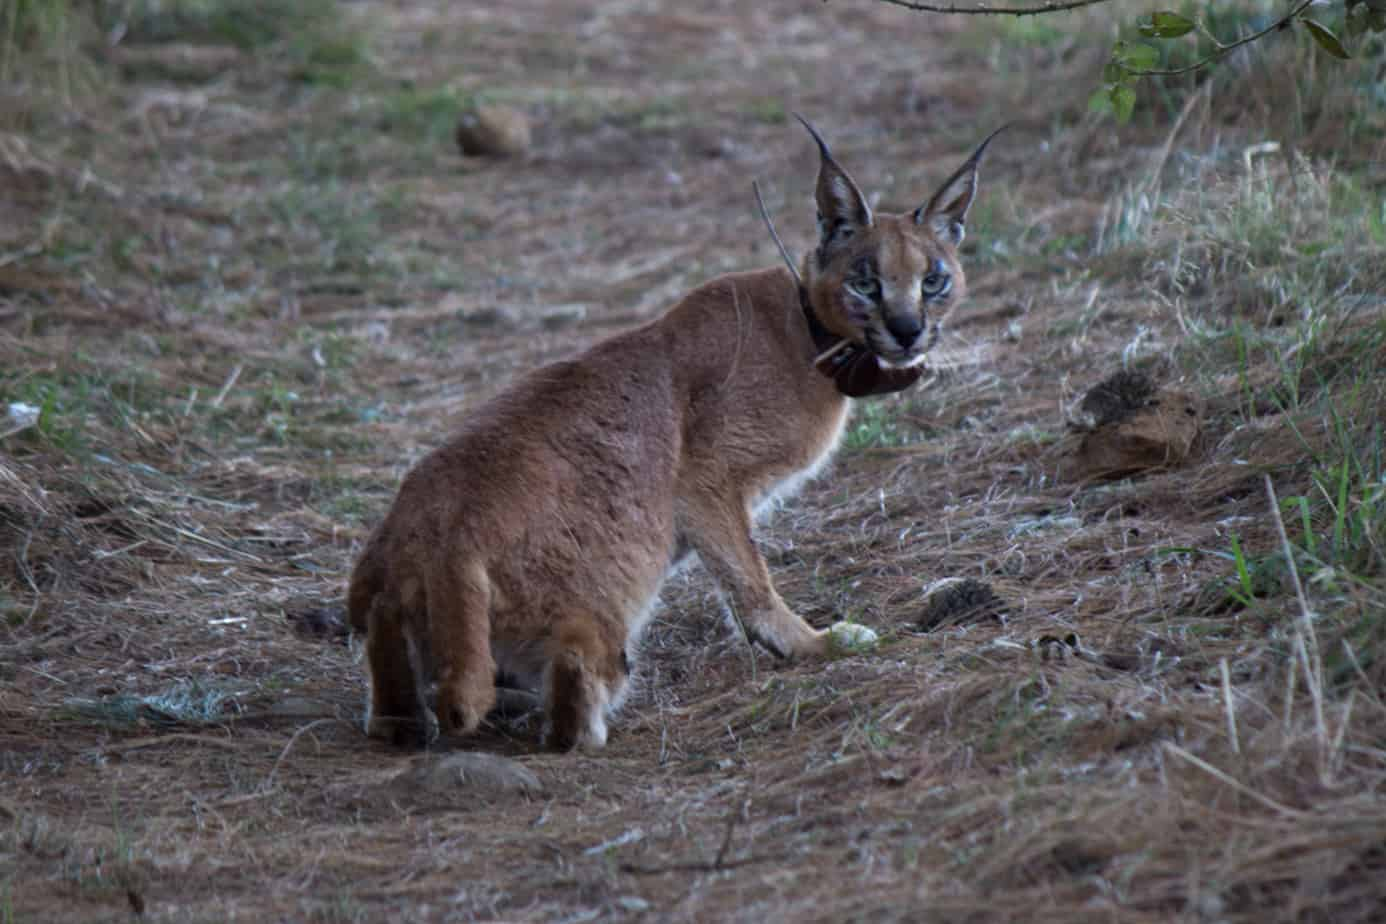 IMG 9880 - Servals & Caracals, Oh My!